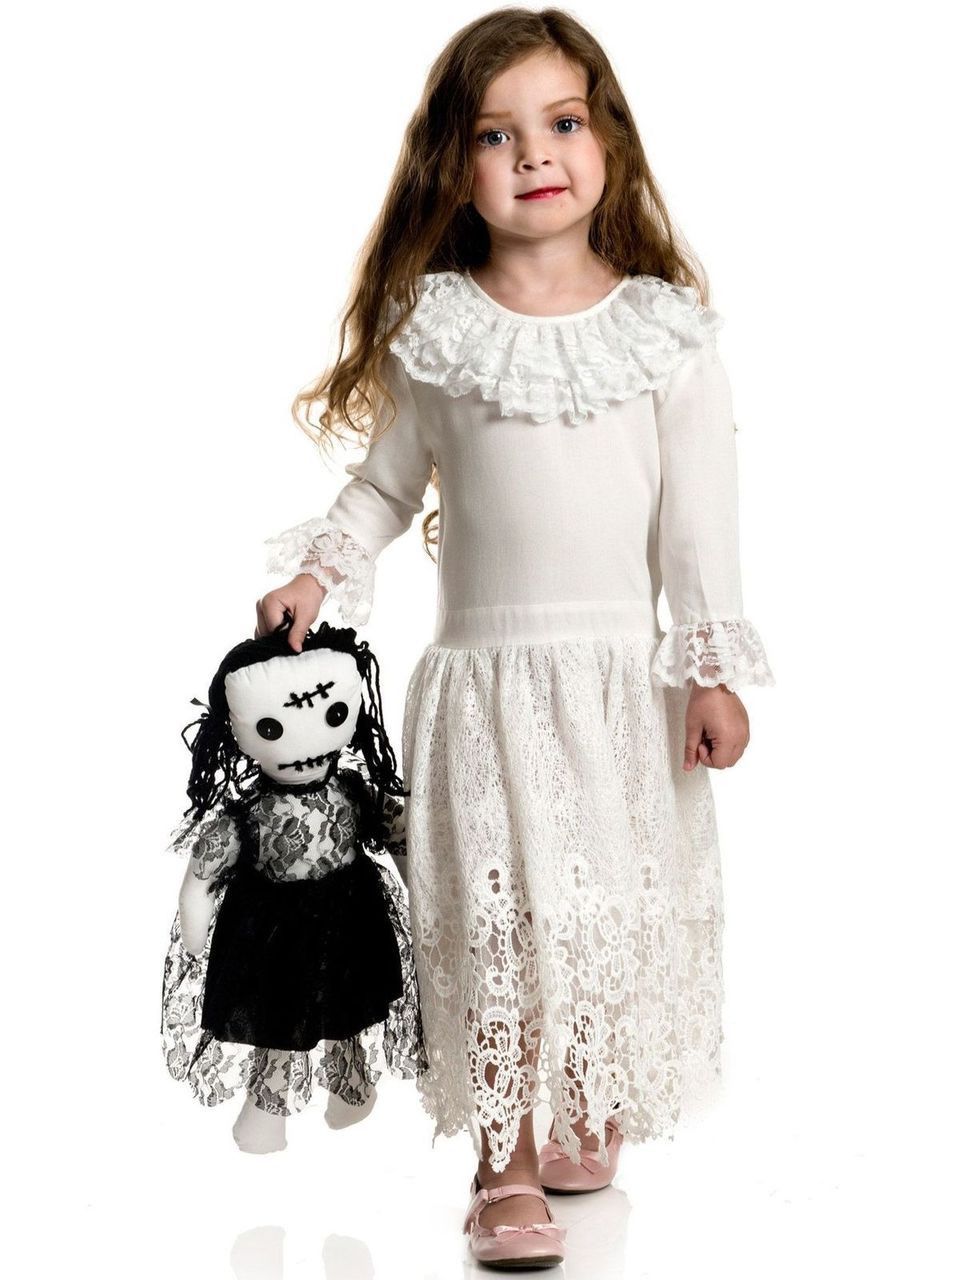 charades little miss voodoo doll gothic dress childrens halloween